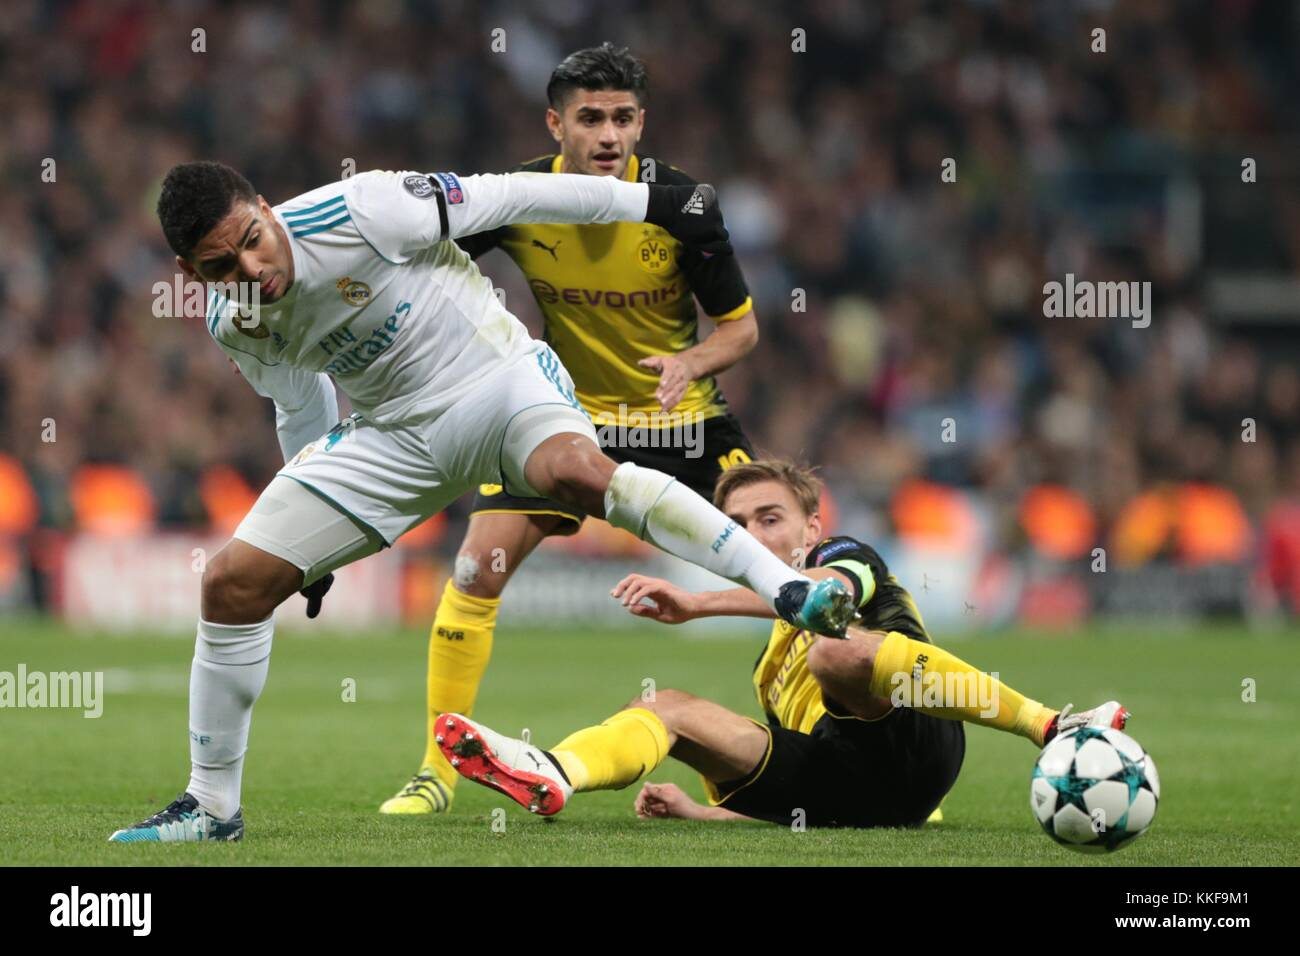 Madrid. 6th Dec, 2017. Casemiro(L) of Real Madrid competes during the UEFA Champions League group H football match - Stock Image